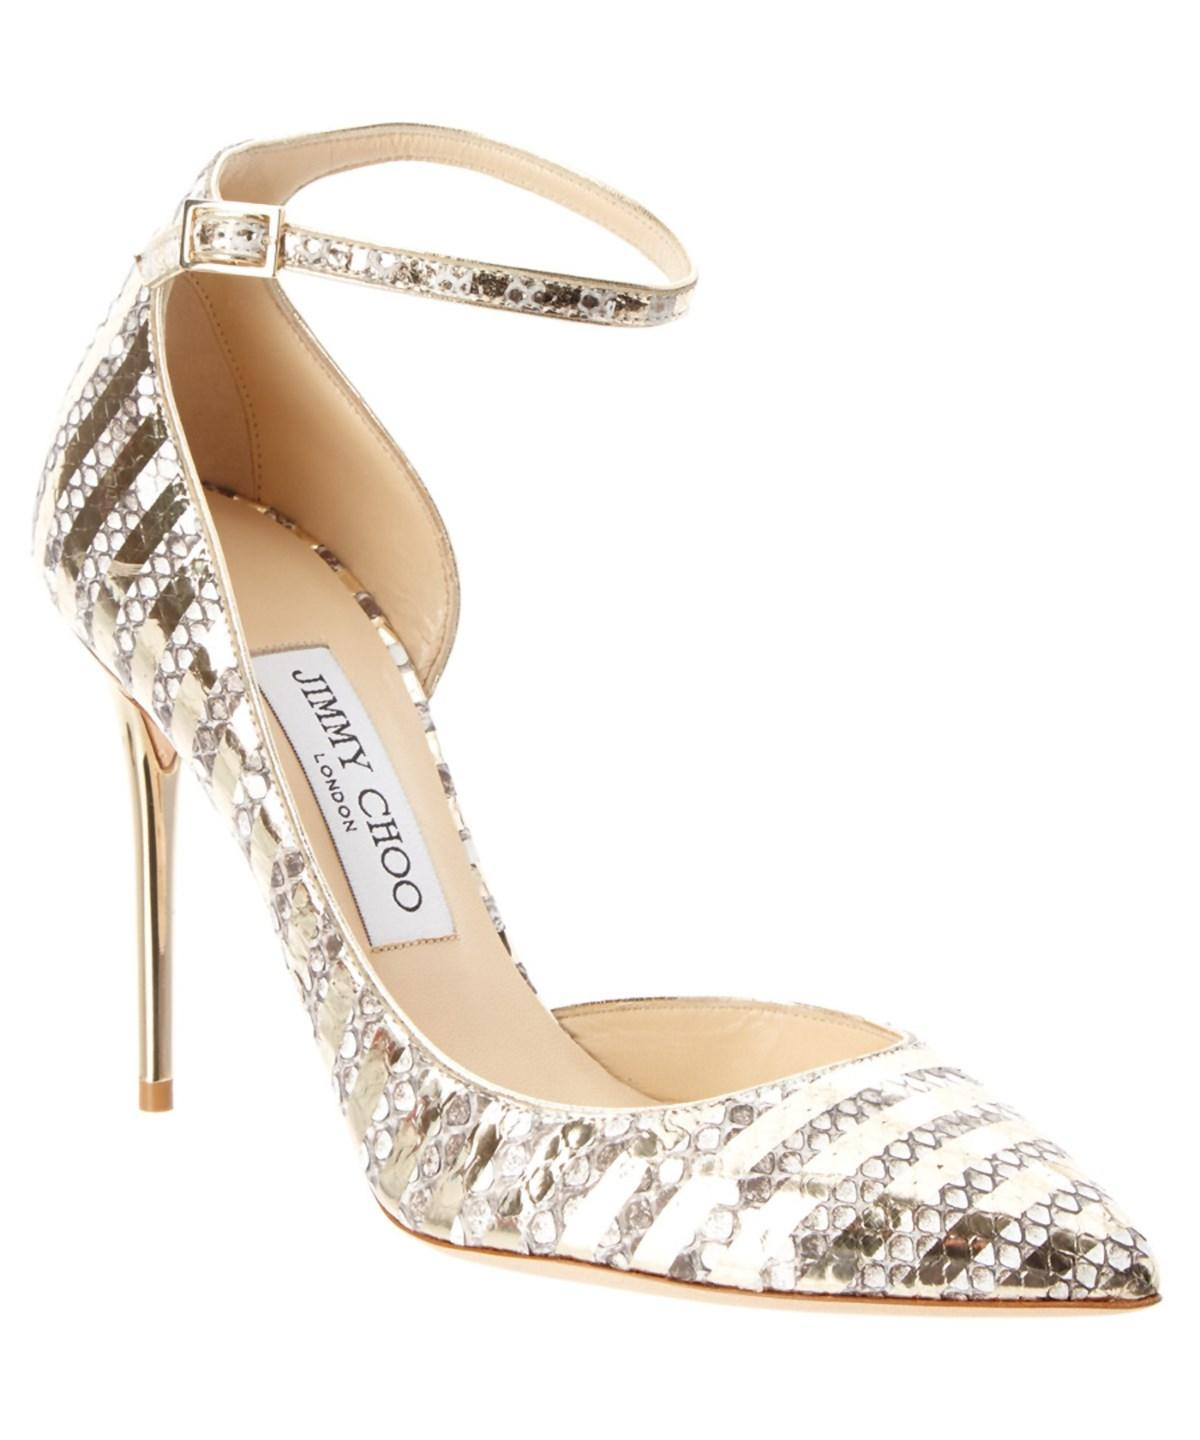 JIMMY CHOO LUCY 100 SNAKESKIN EMBOSSED LEATHER PUMP'